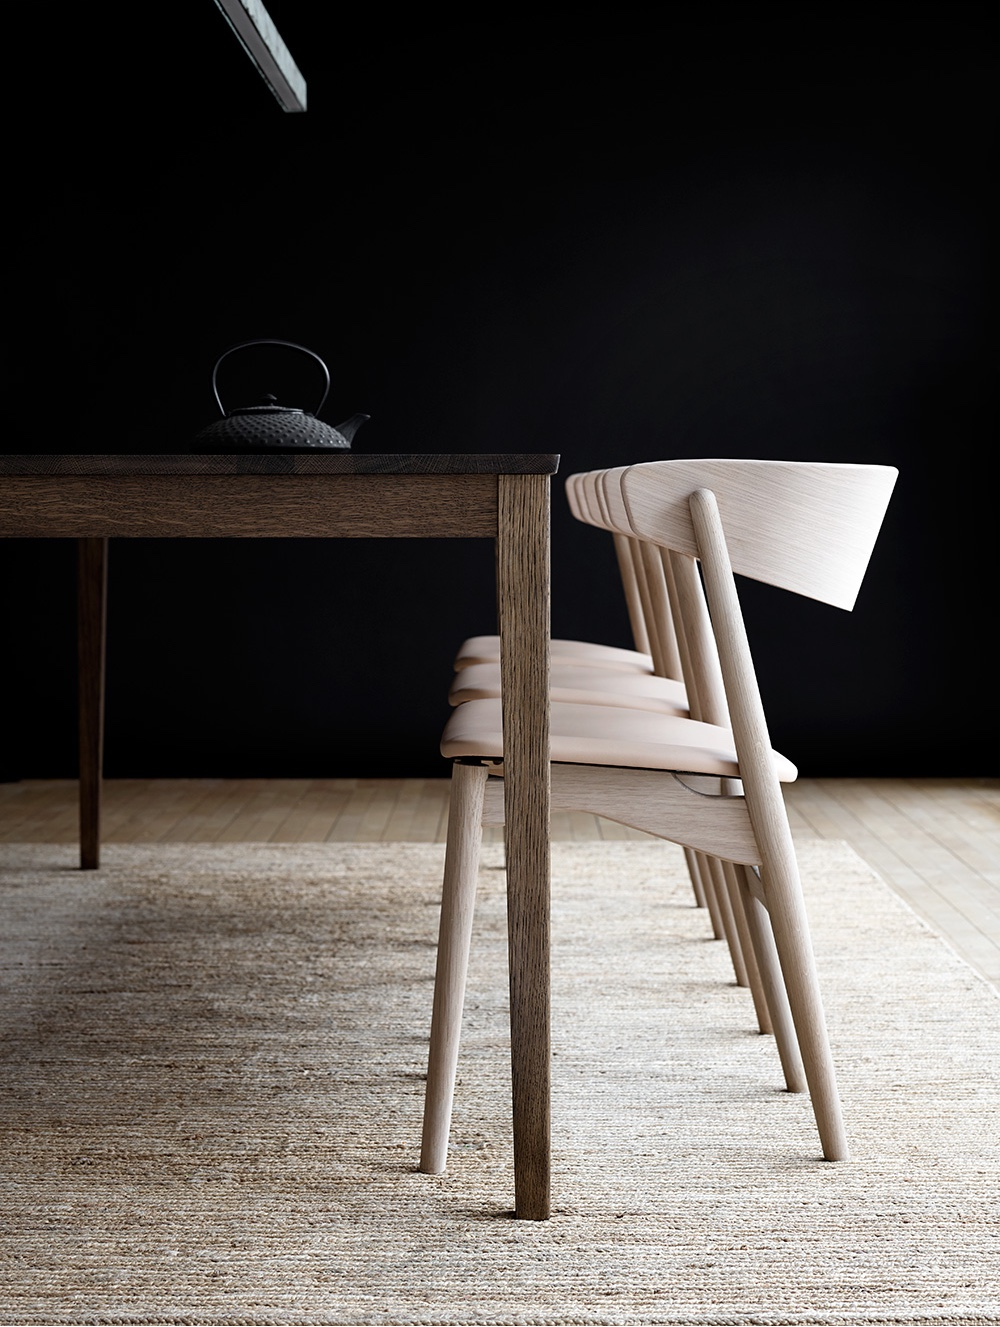 Sibast No 7 by Helge Sibast for Sibast Furniture. Leather: Senegal in honey.